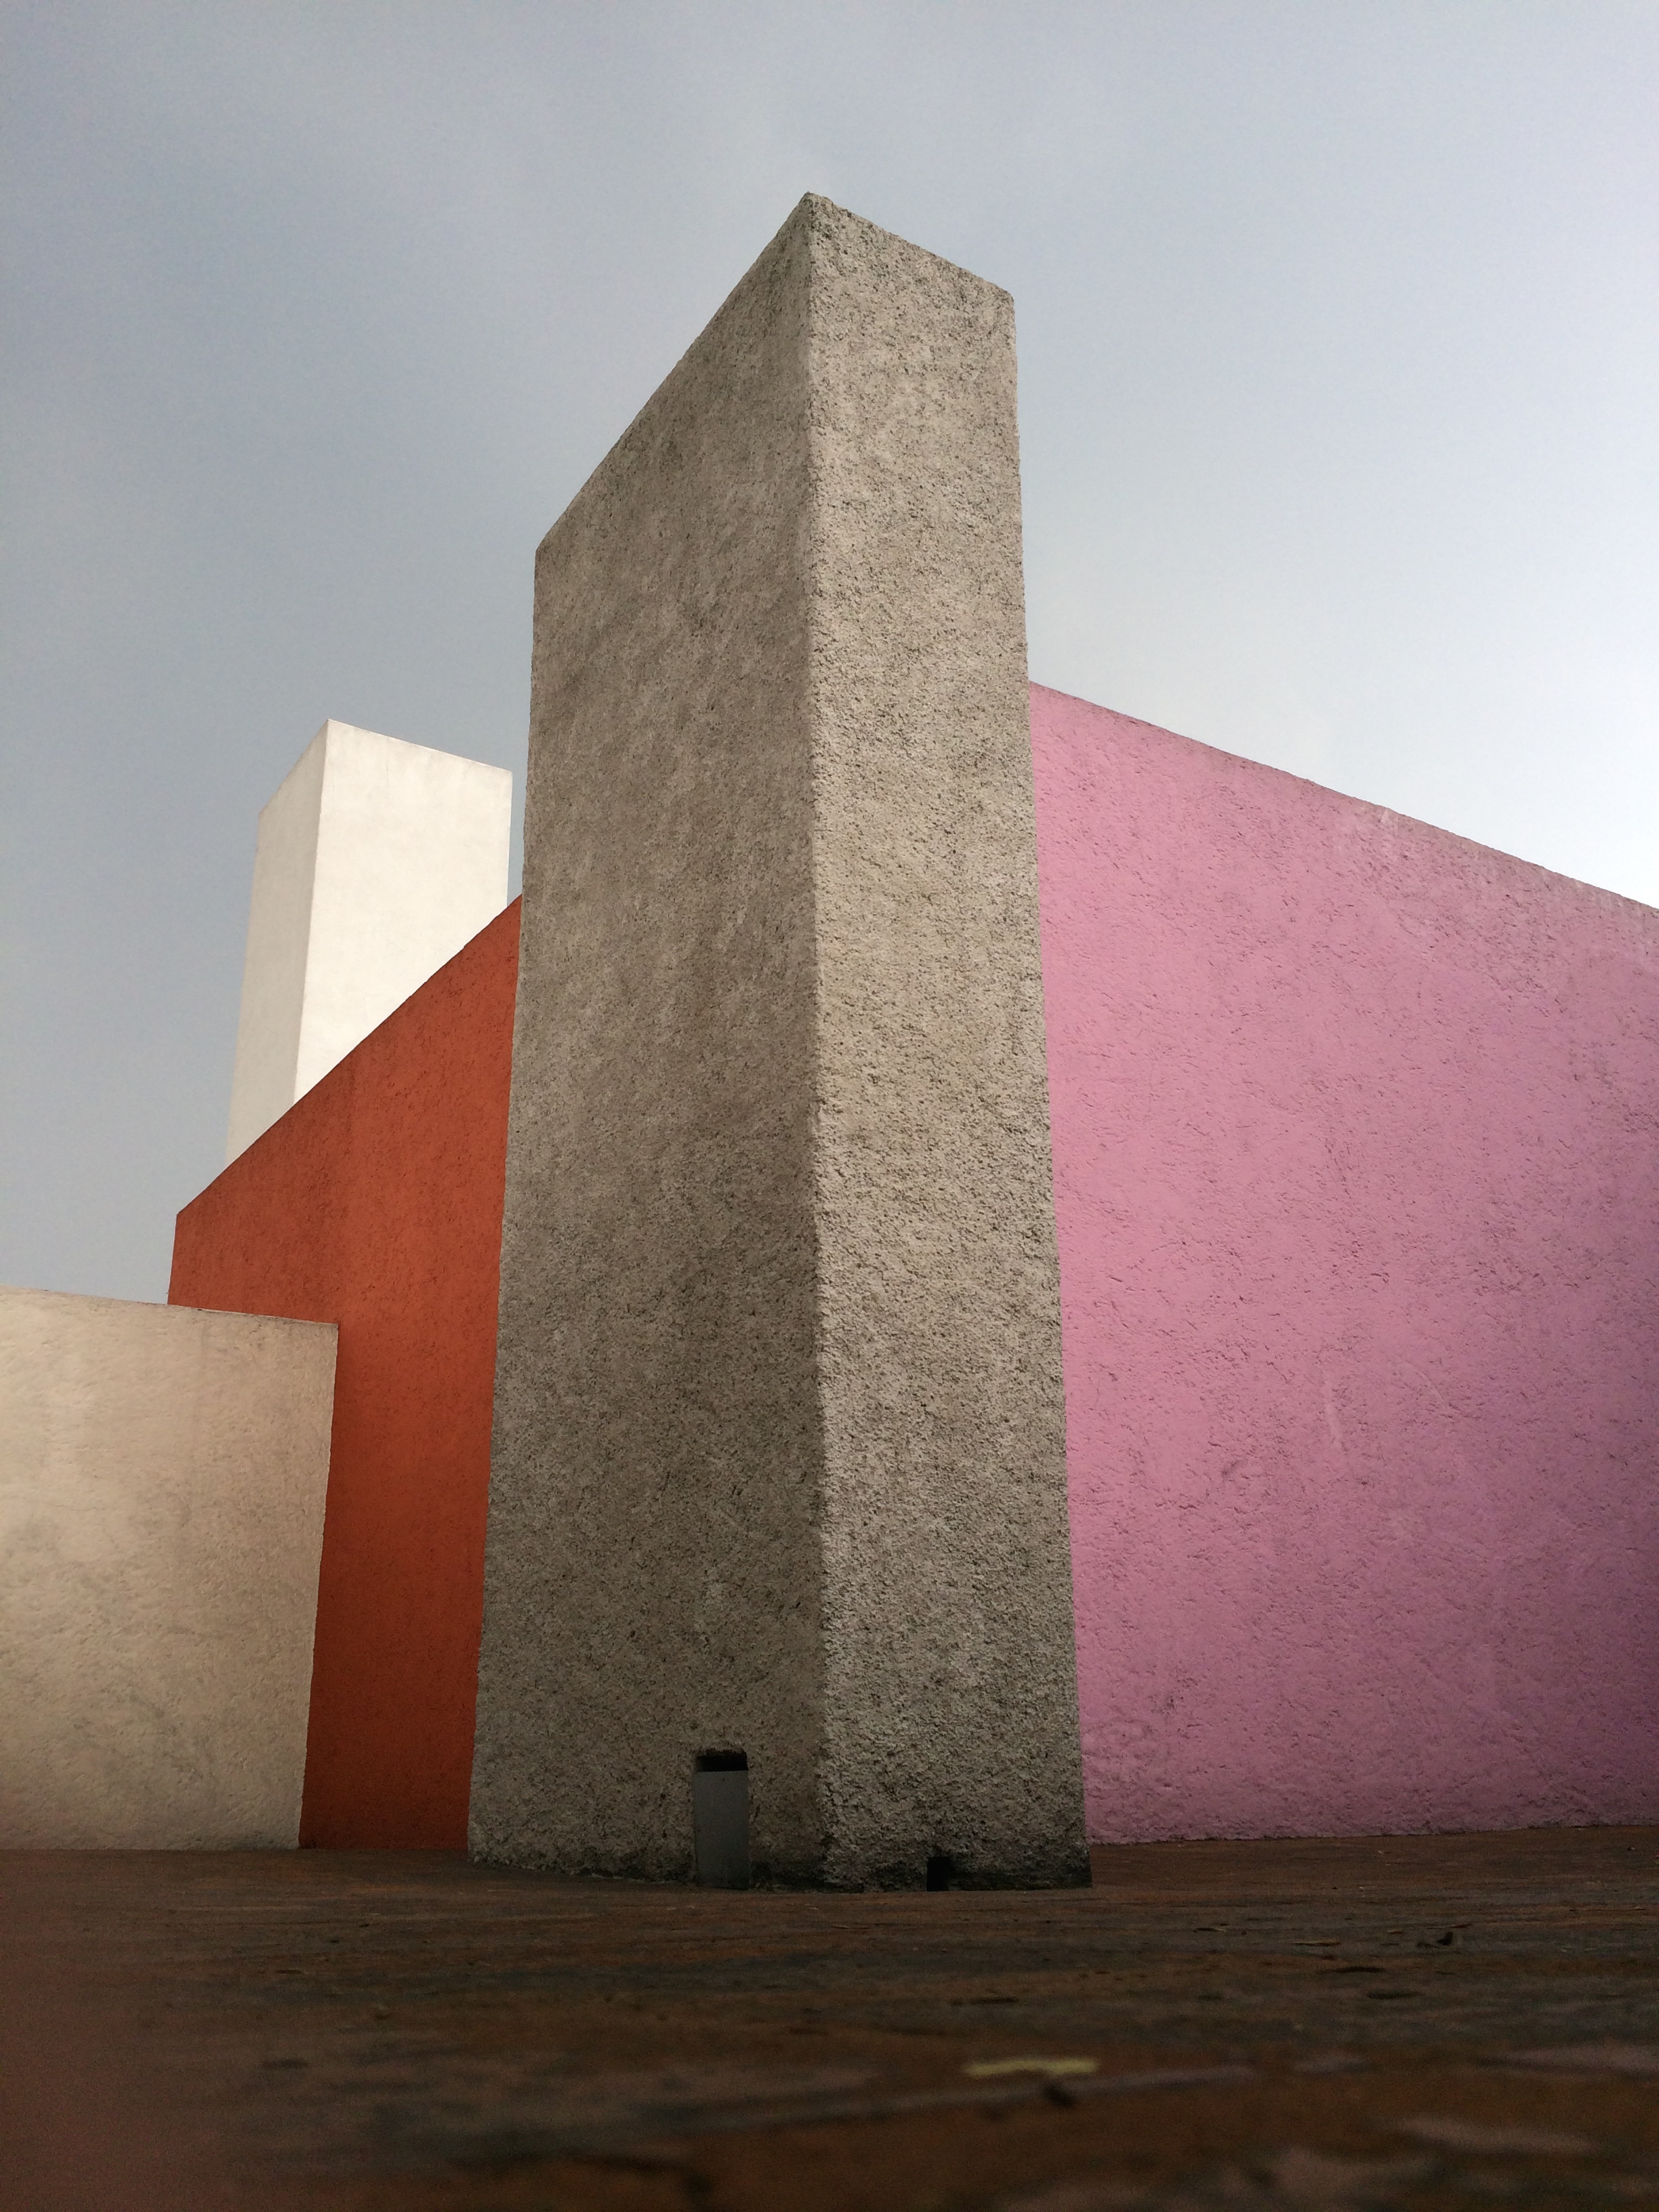 Casa Luis Barragan, Mexico City, Mexico